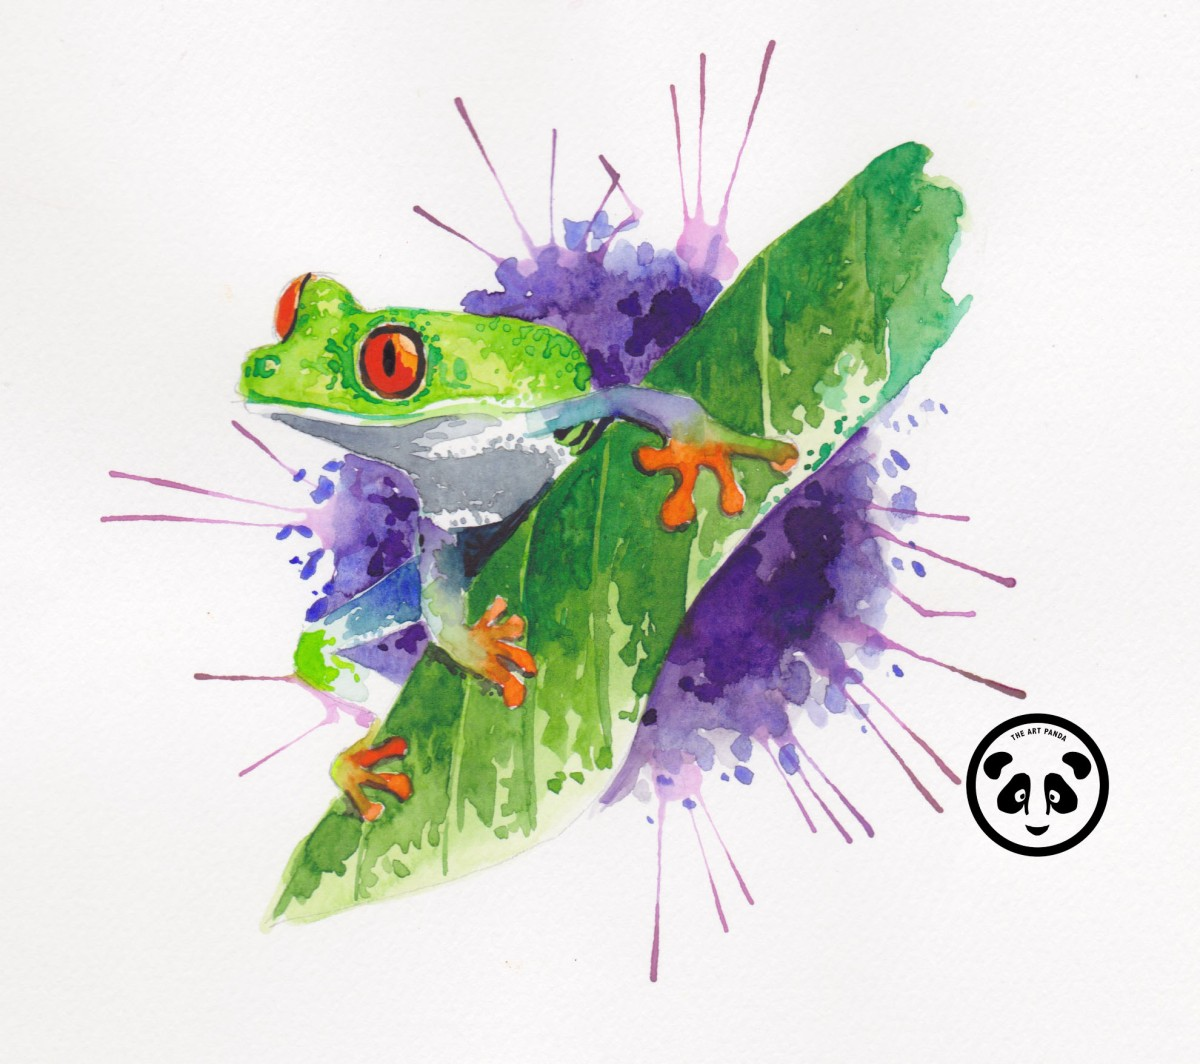 Doodlewash and watercolor sketch by Jeffrell Soliveres The Art Panda of frog with red eyes